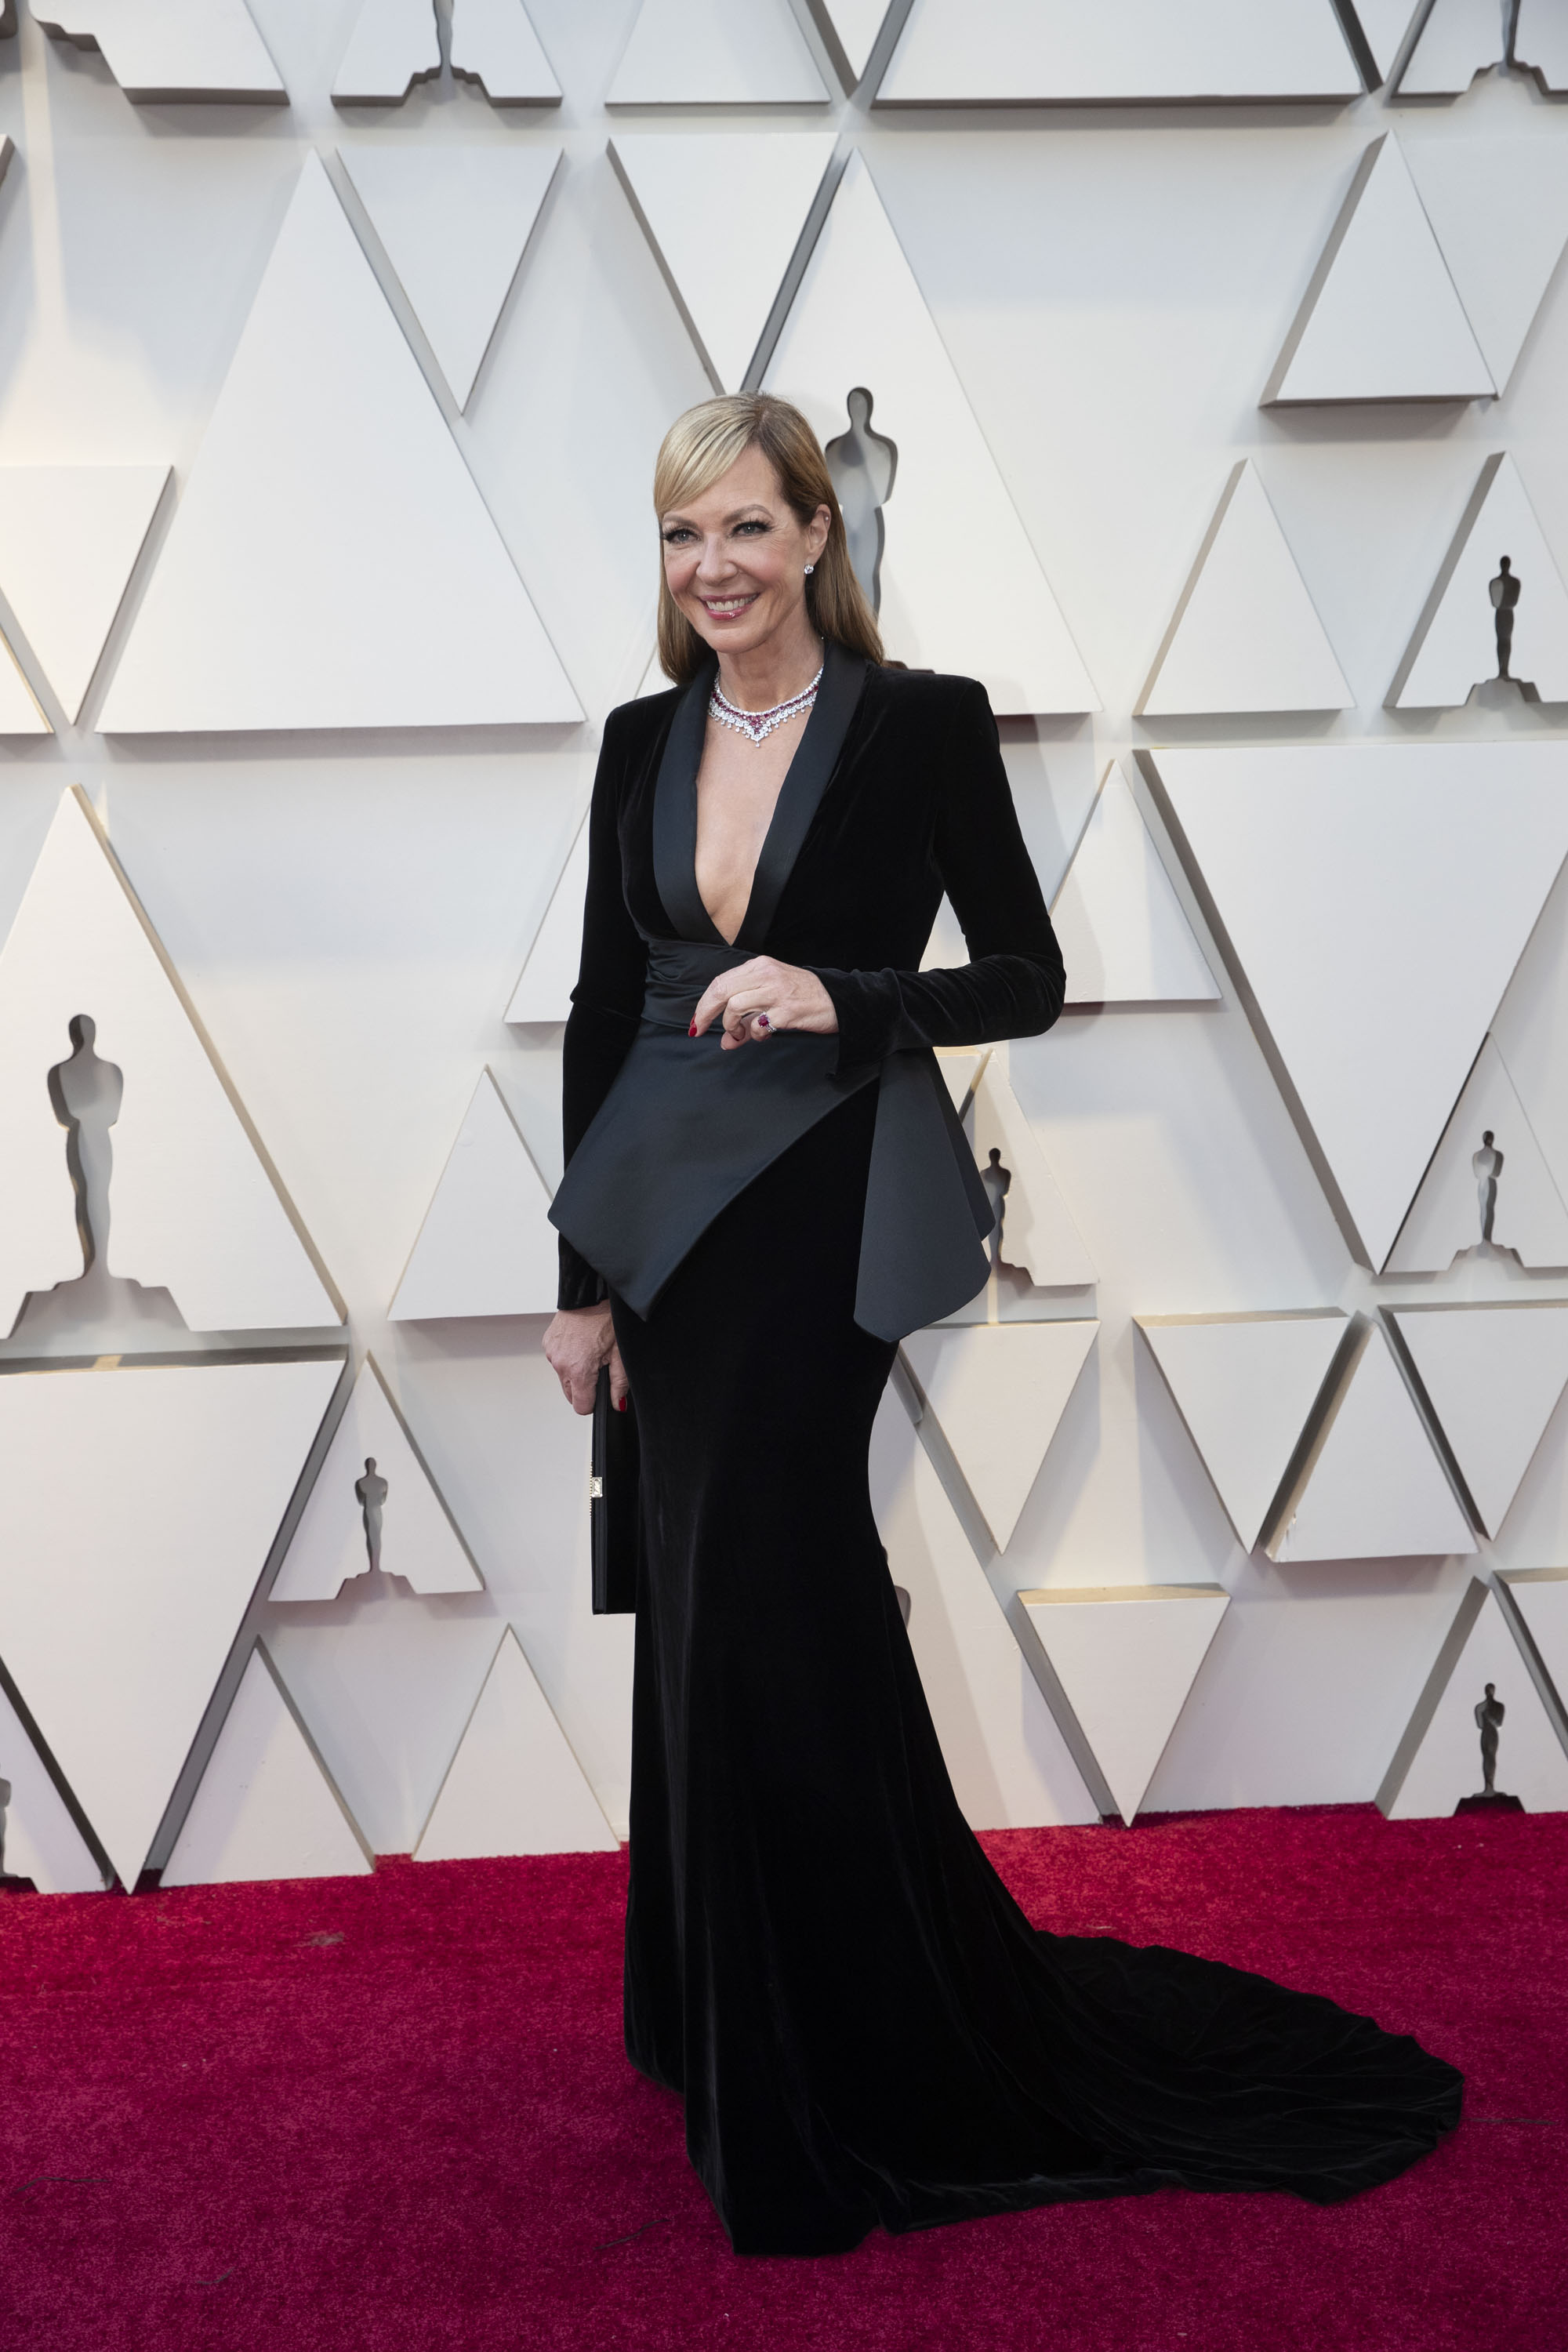 All Of The Looks From The 2019 Oscars Red Carpet - Grazia Australia